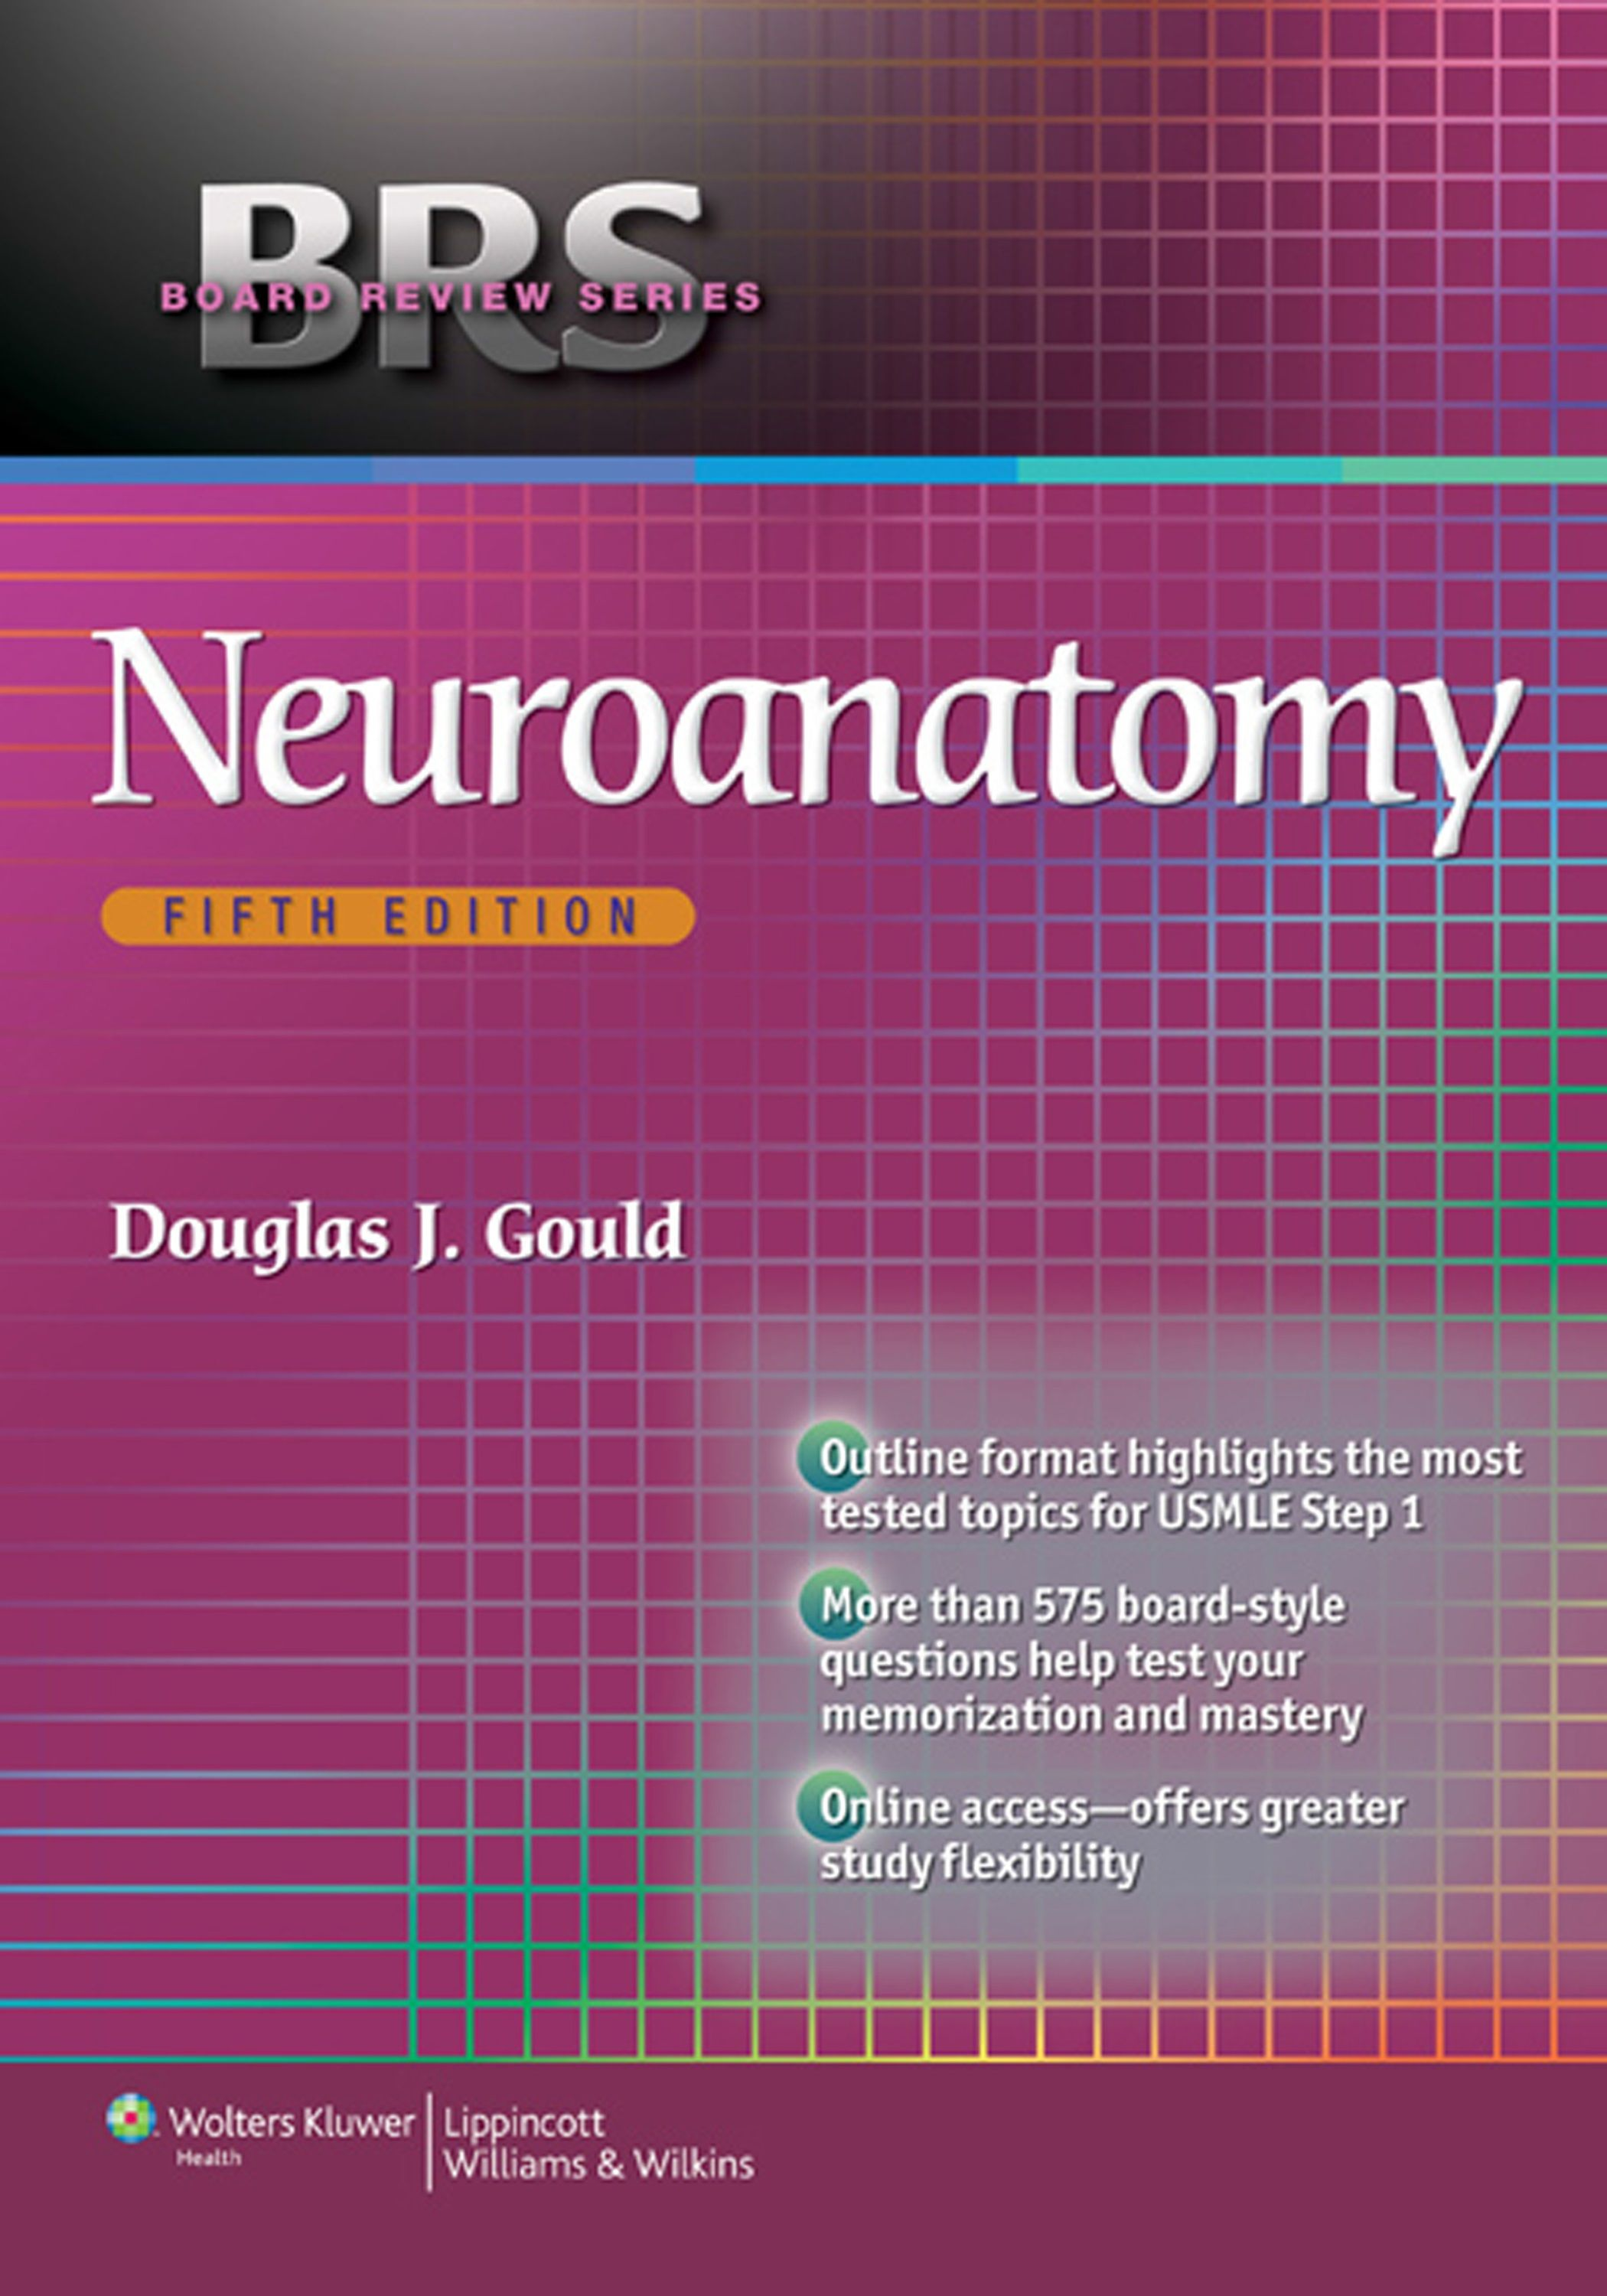 Brs neuroanatomy 5th edition pdf dc pinterest pdf medical brs neuroanatomy 5th edition pdf fandeluxe